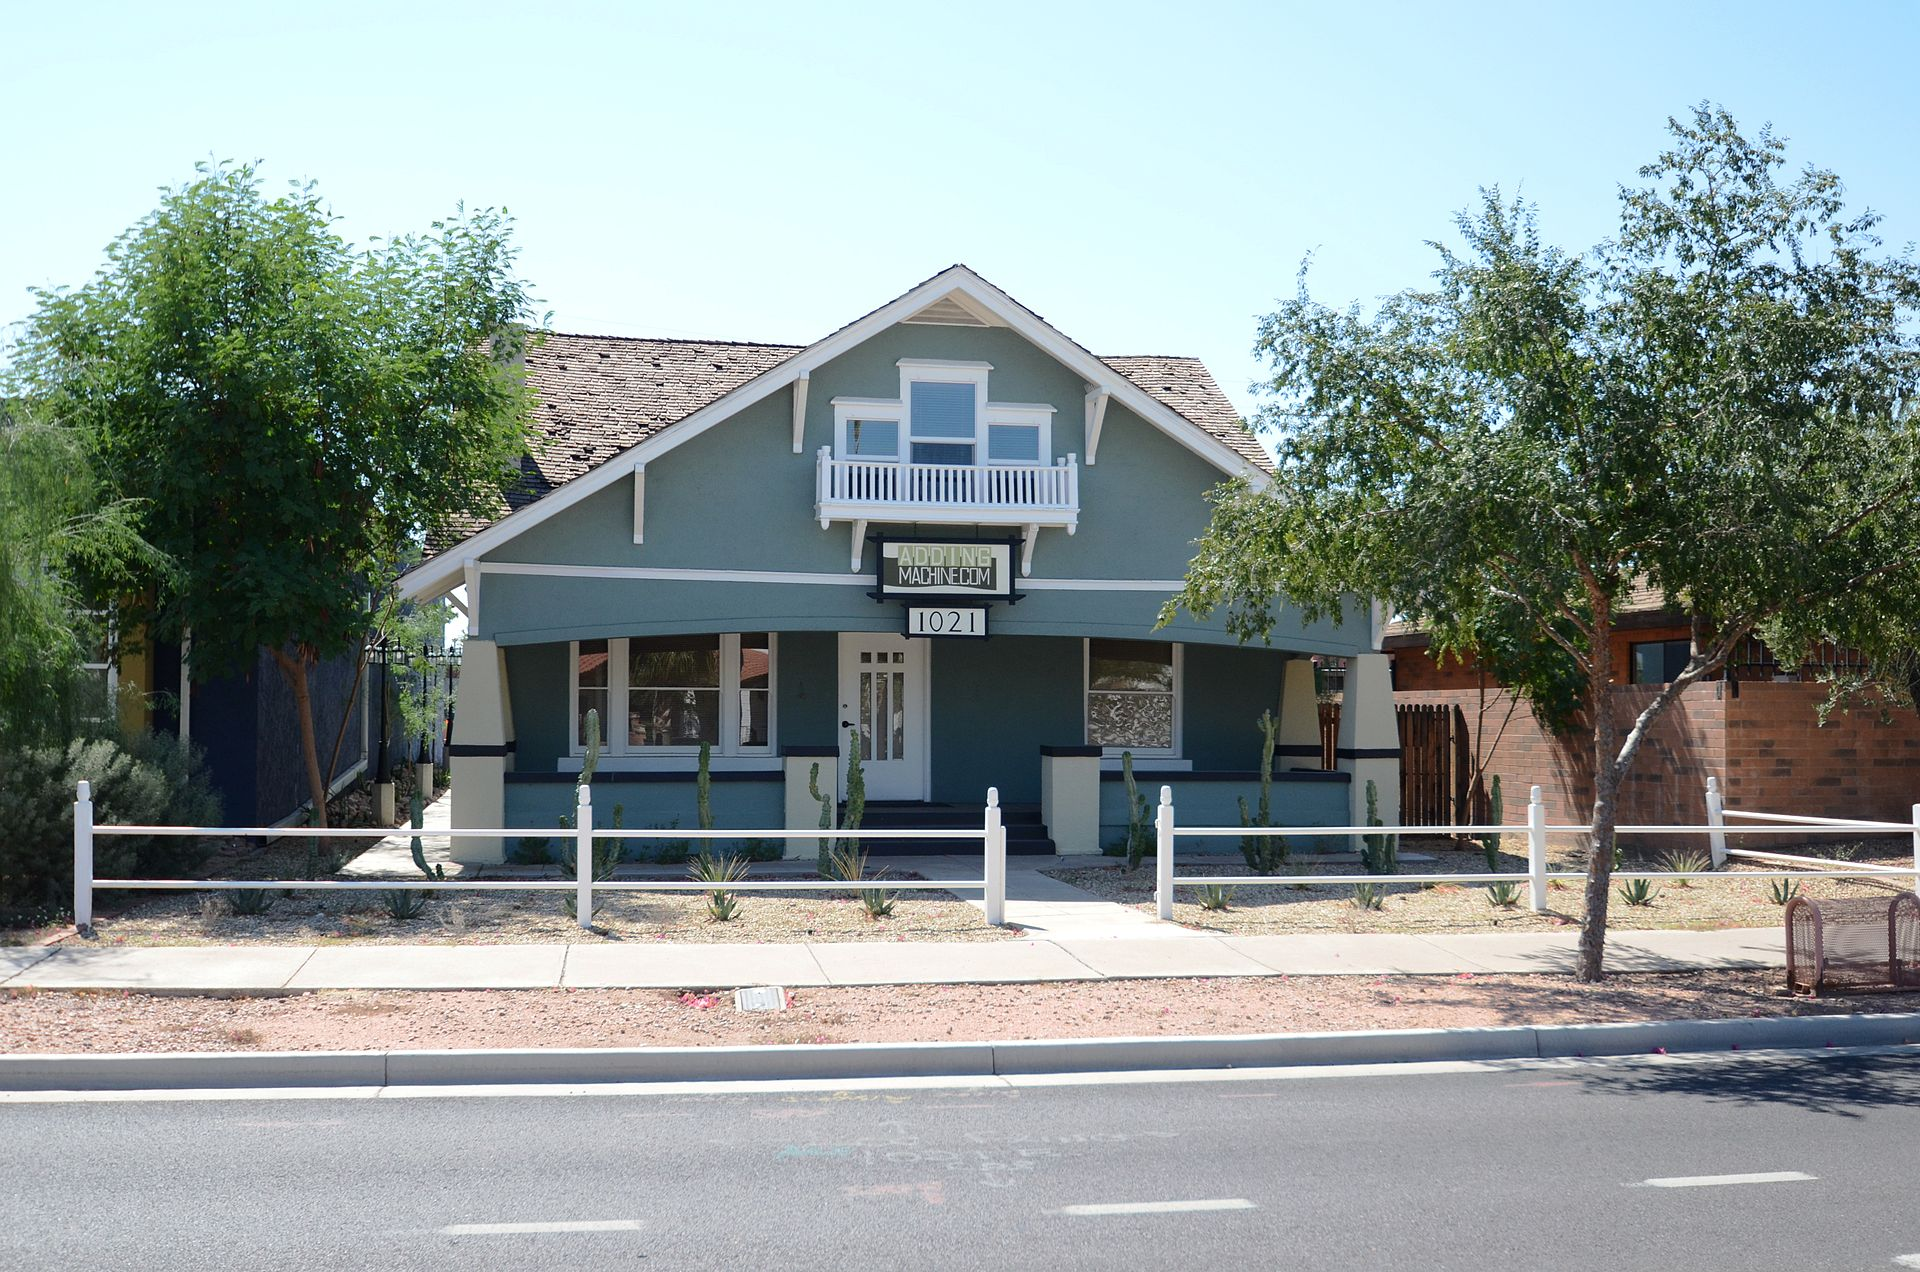 The former Swindall Tourist Inn, now an accounting business. It was built in 1913 for Matilda Steyaert who arrived in Phoenix in 1897.